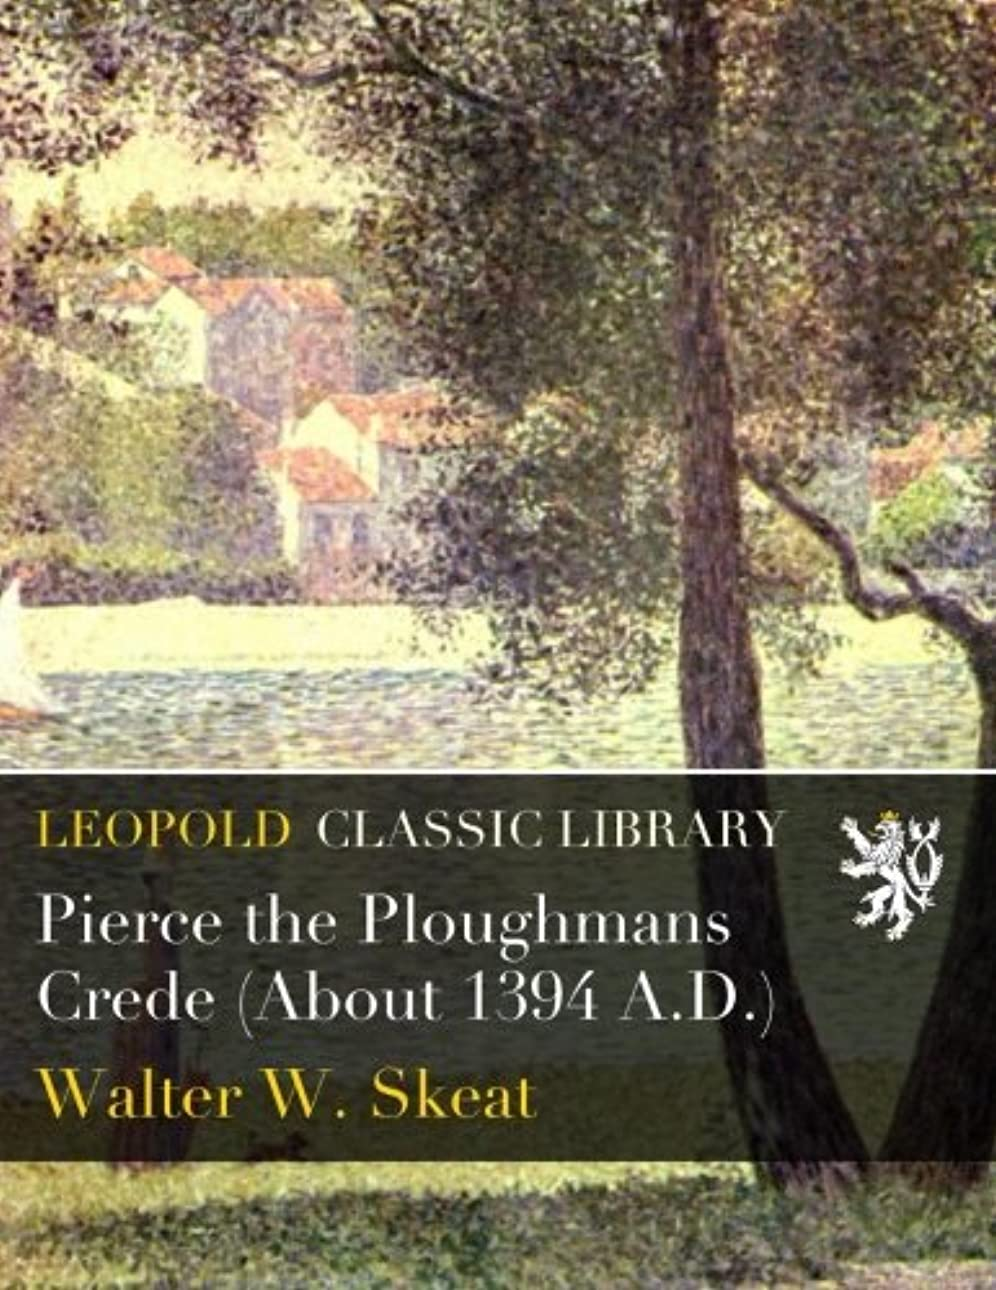 高度イーウェル半径Pierce the Ploughmans Crede (About 1394 A.D.)